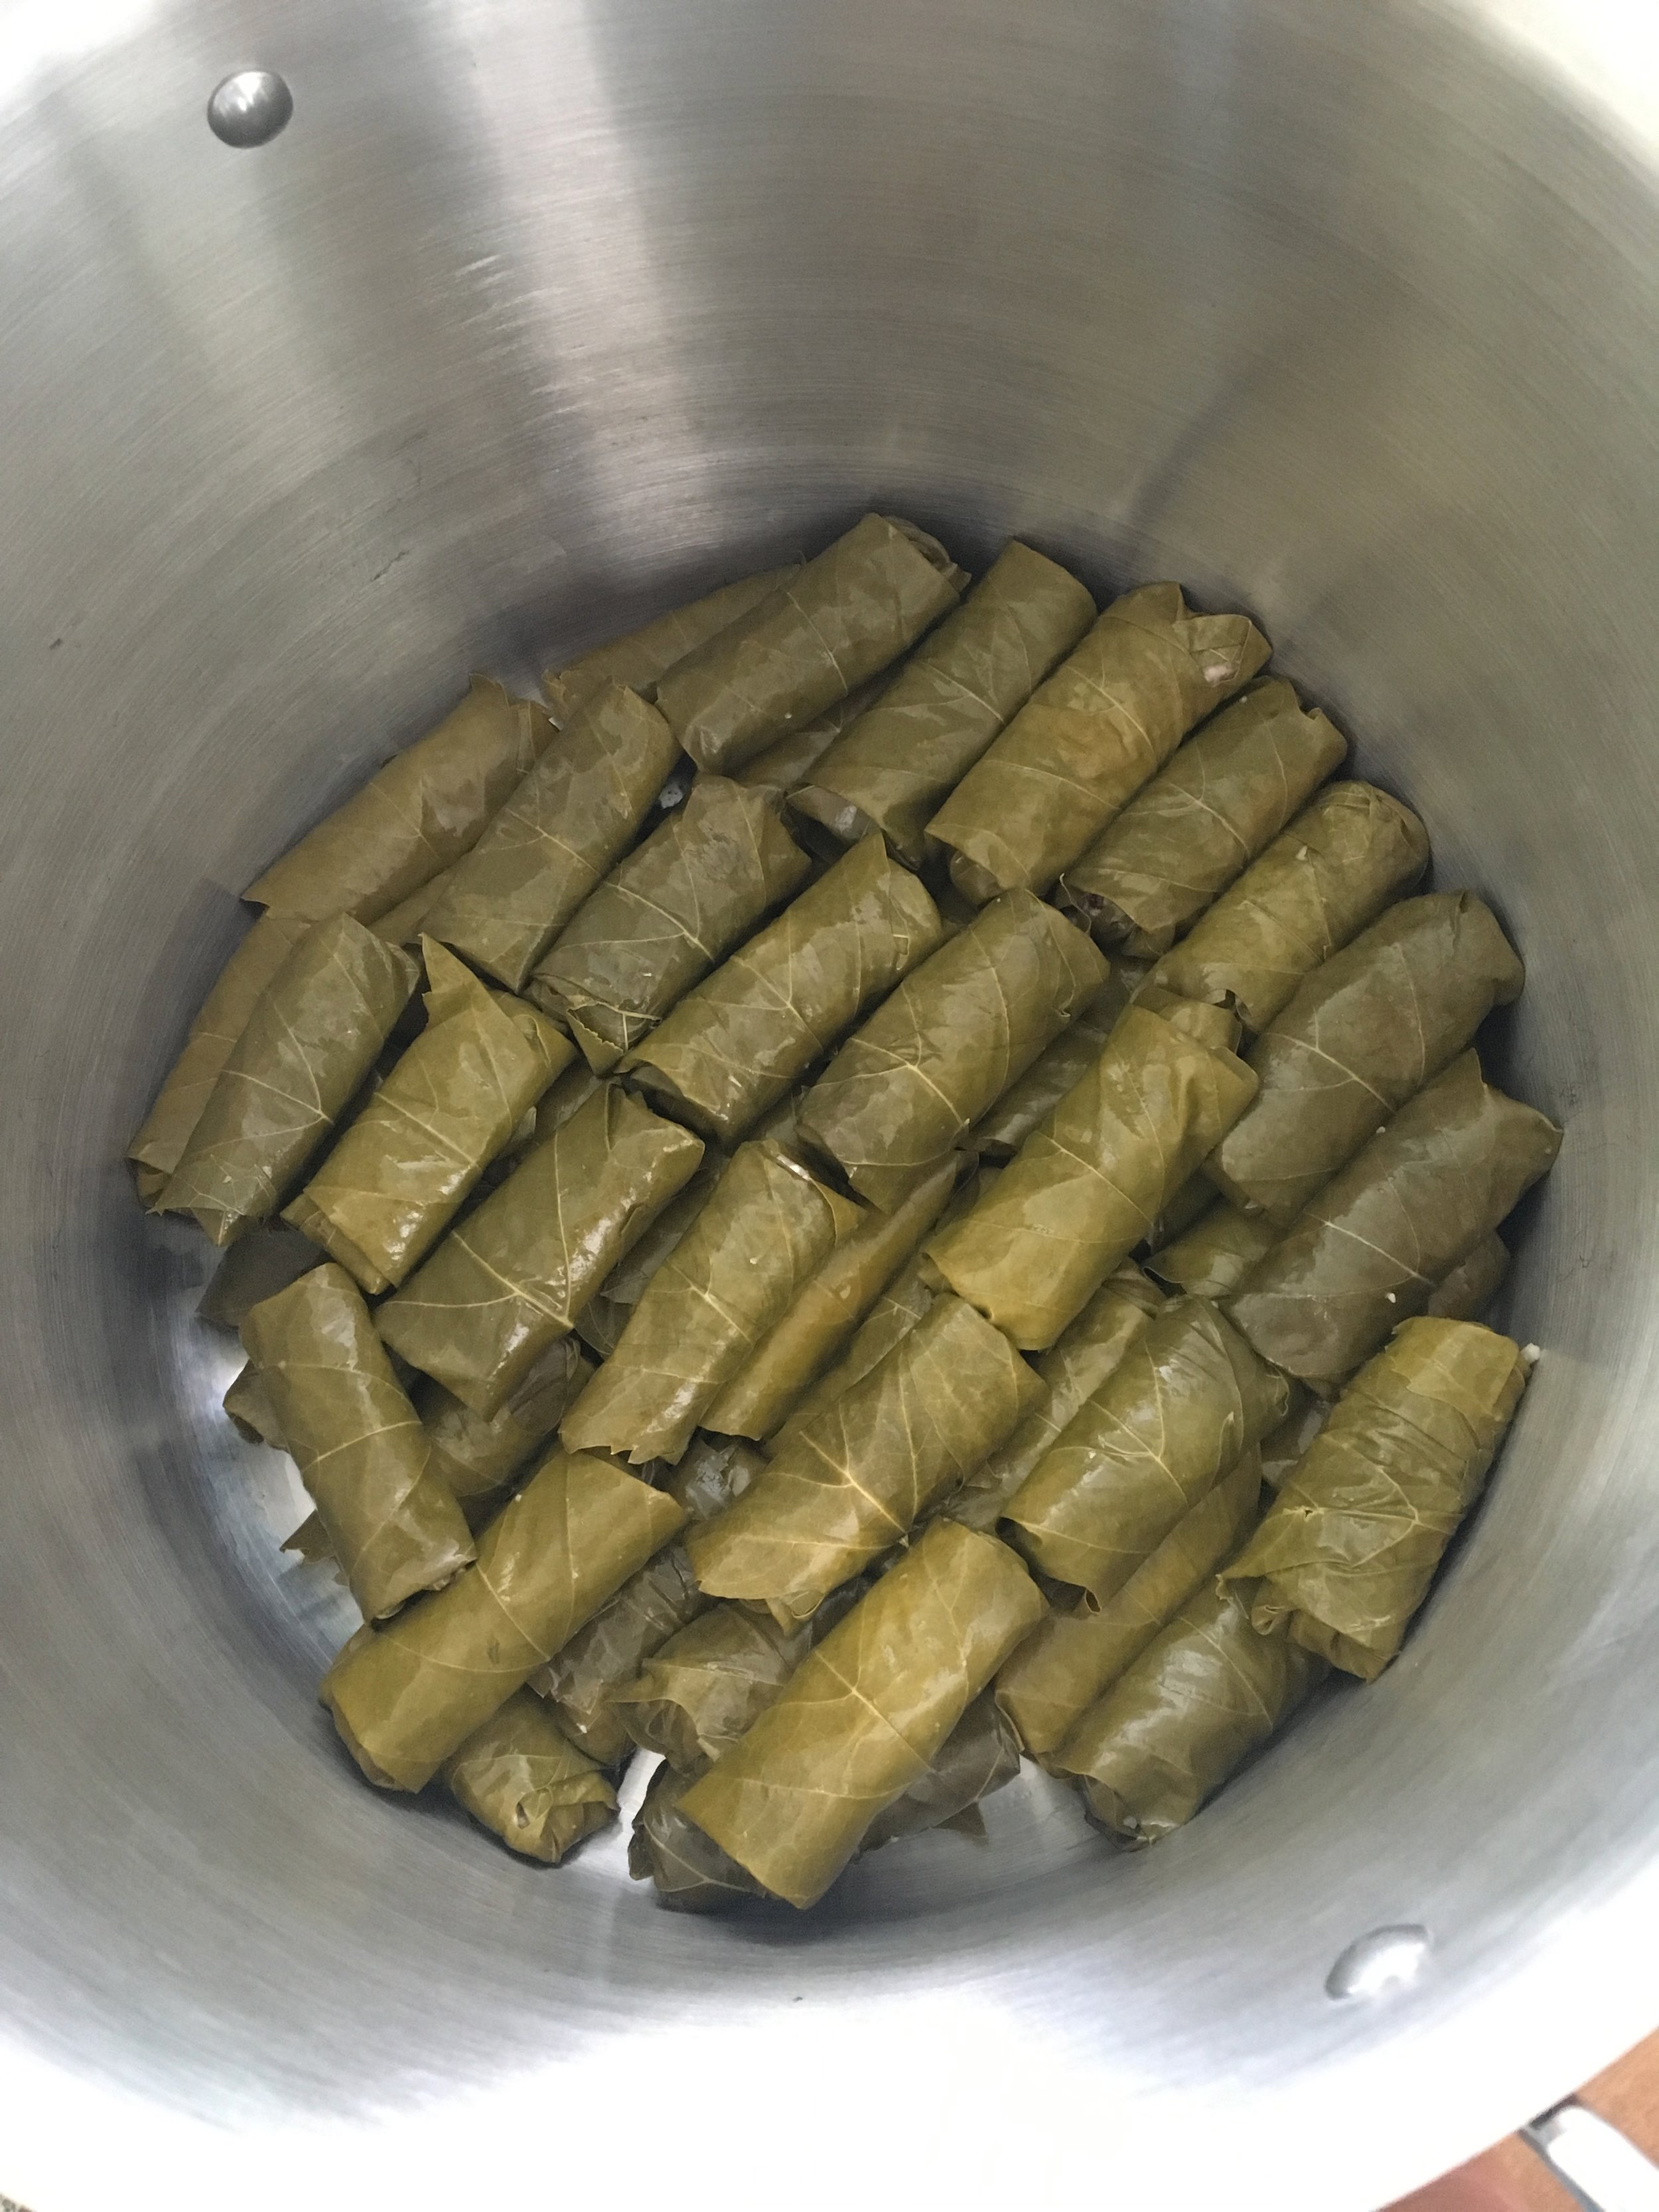 Double layer of dolmas in the pot, seam side down so the simmering doesn't cause them to unroll.